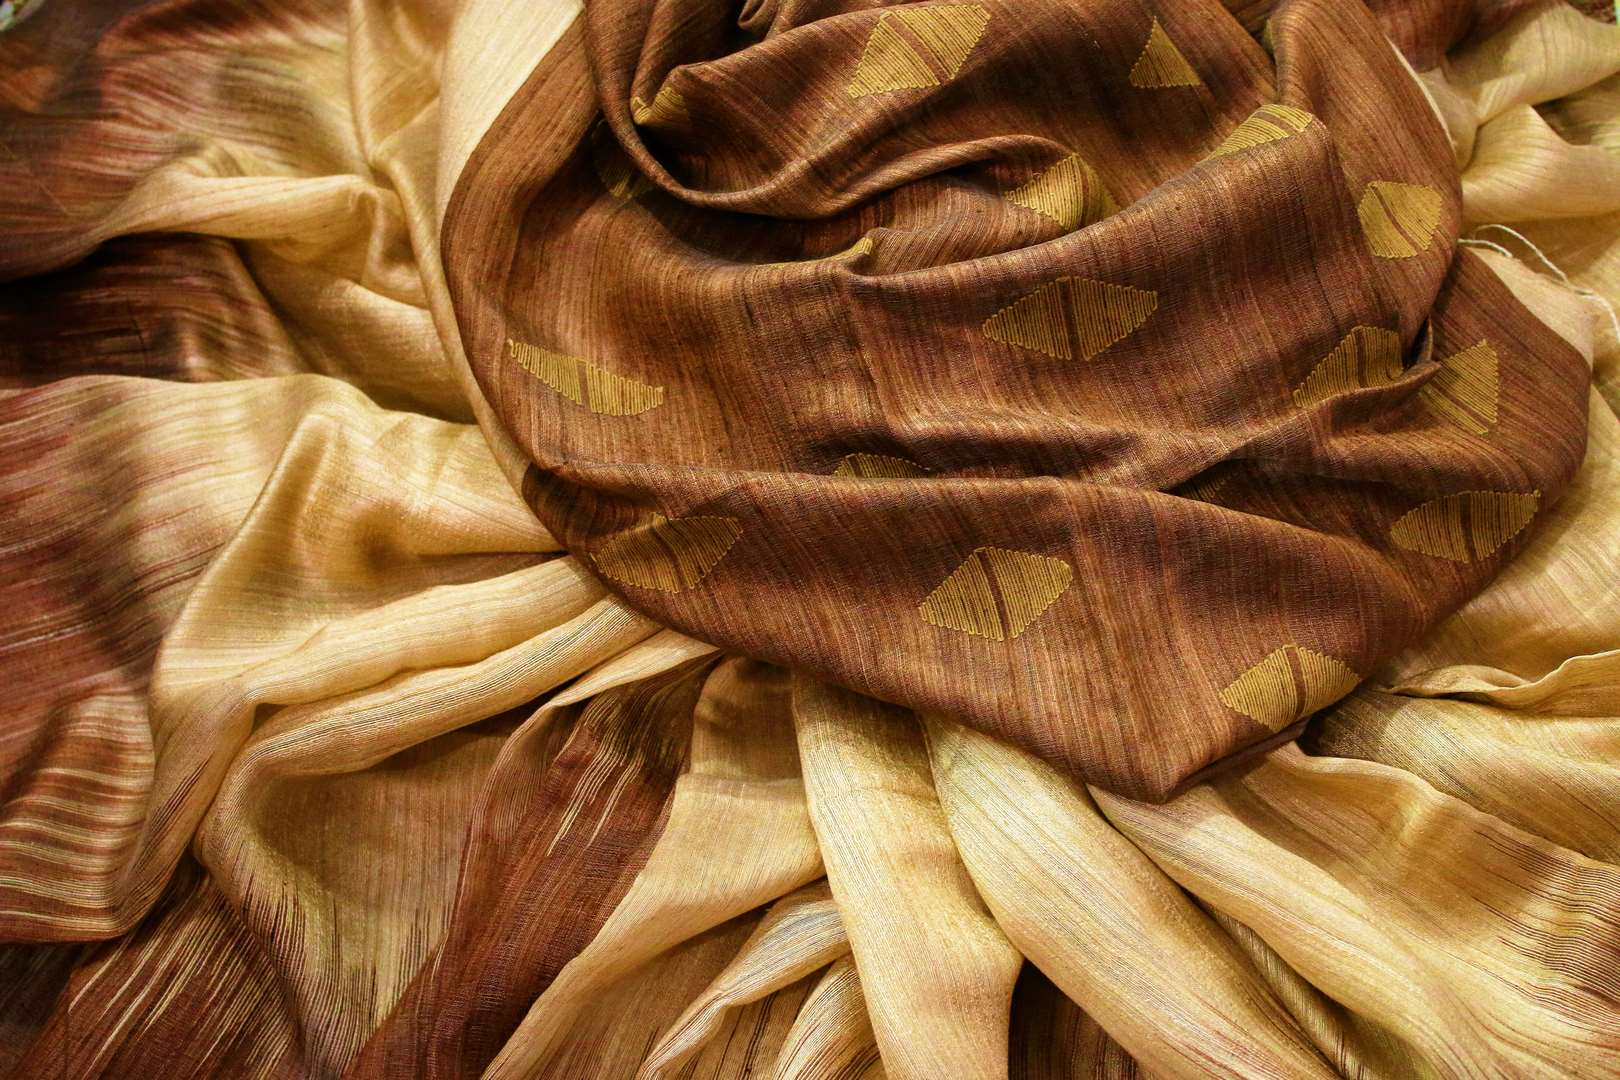 Buy beige matka silk saree with brown border online in USA. Pure Elegance fashion store brings a stunning range of ethnic Indian silk sarees for weddings in USA.-details